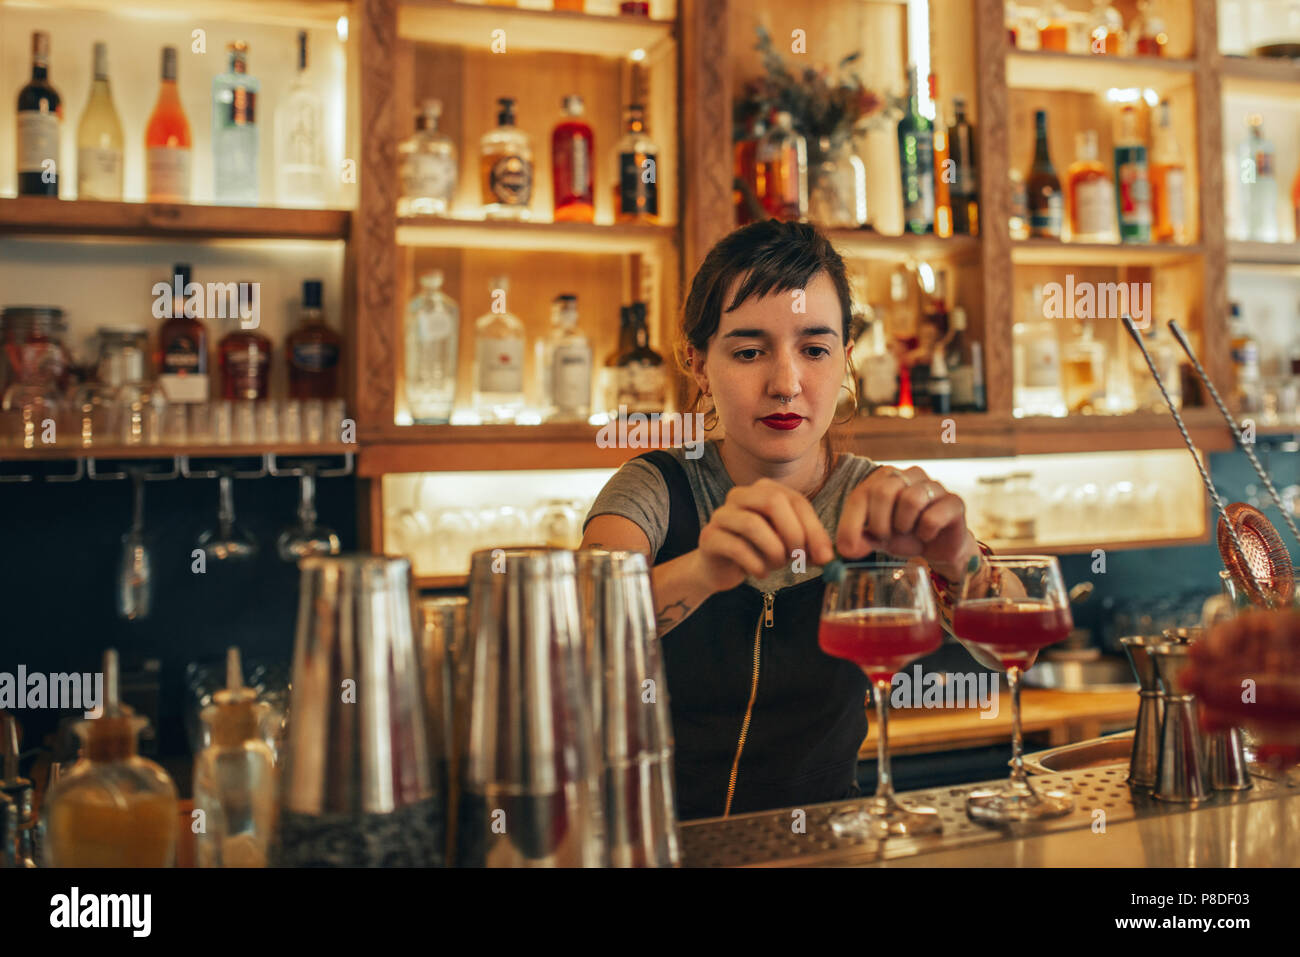 Young female bartender standing behind a bar counter making cocktails  - Stock Image